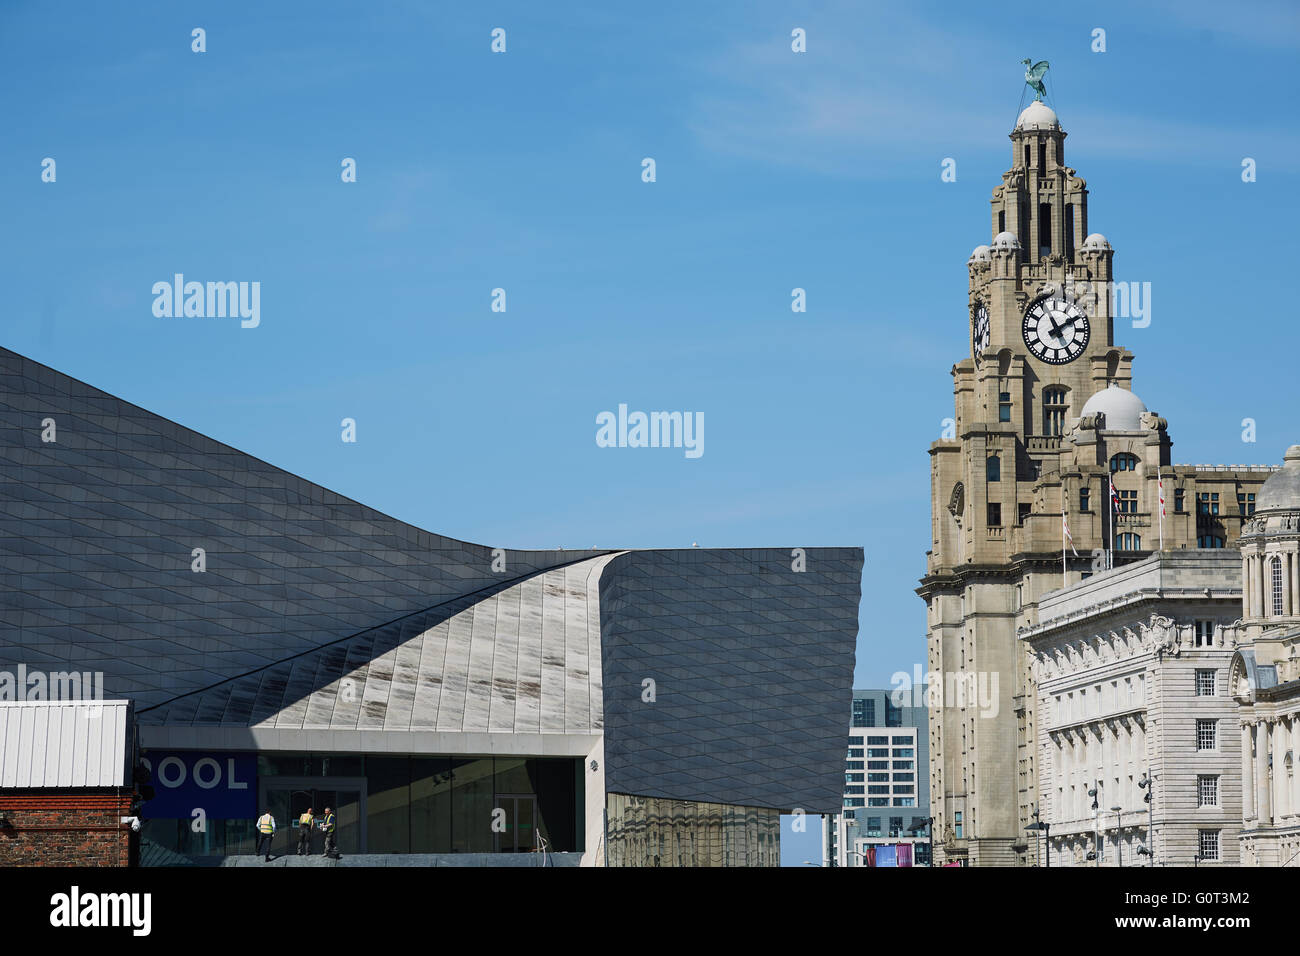 Liverpool albert dock buildings liver building    The Royal Liver Building is a Grade I listed building in Liverpool, - Stock Image